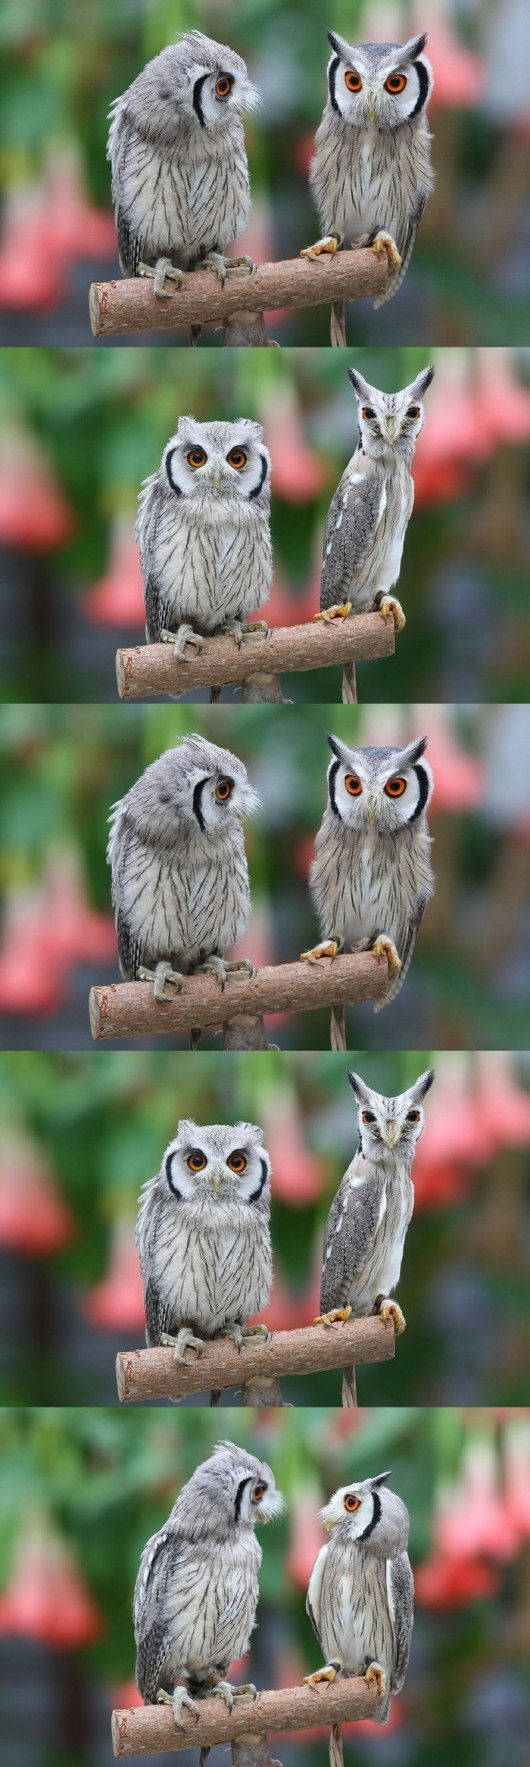 Shape-shifting owl - http://www.youtube.com/watch?v=gFwgblszf6s&feature;=related - so hilarious! #Owl